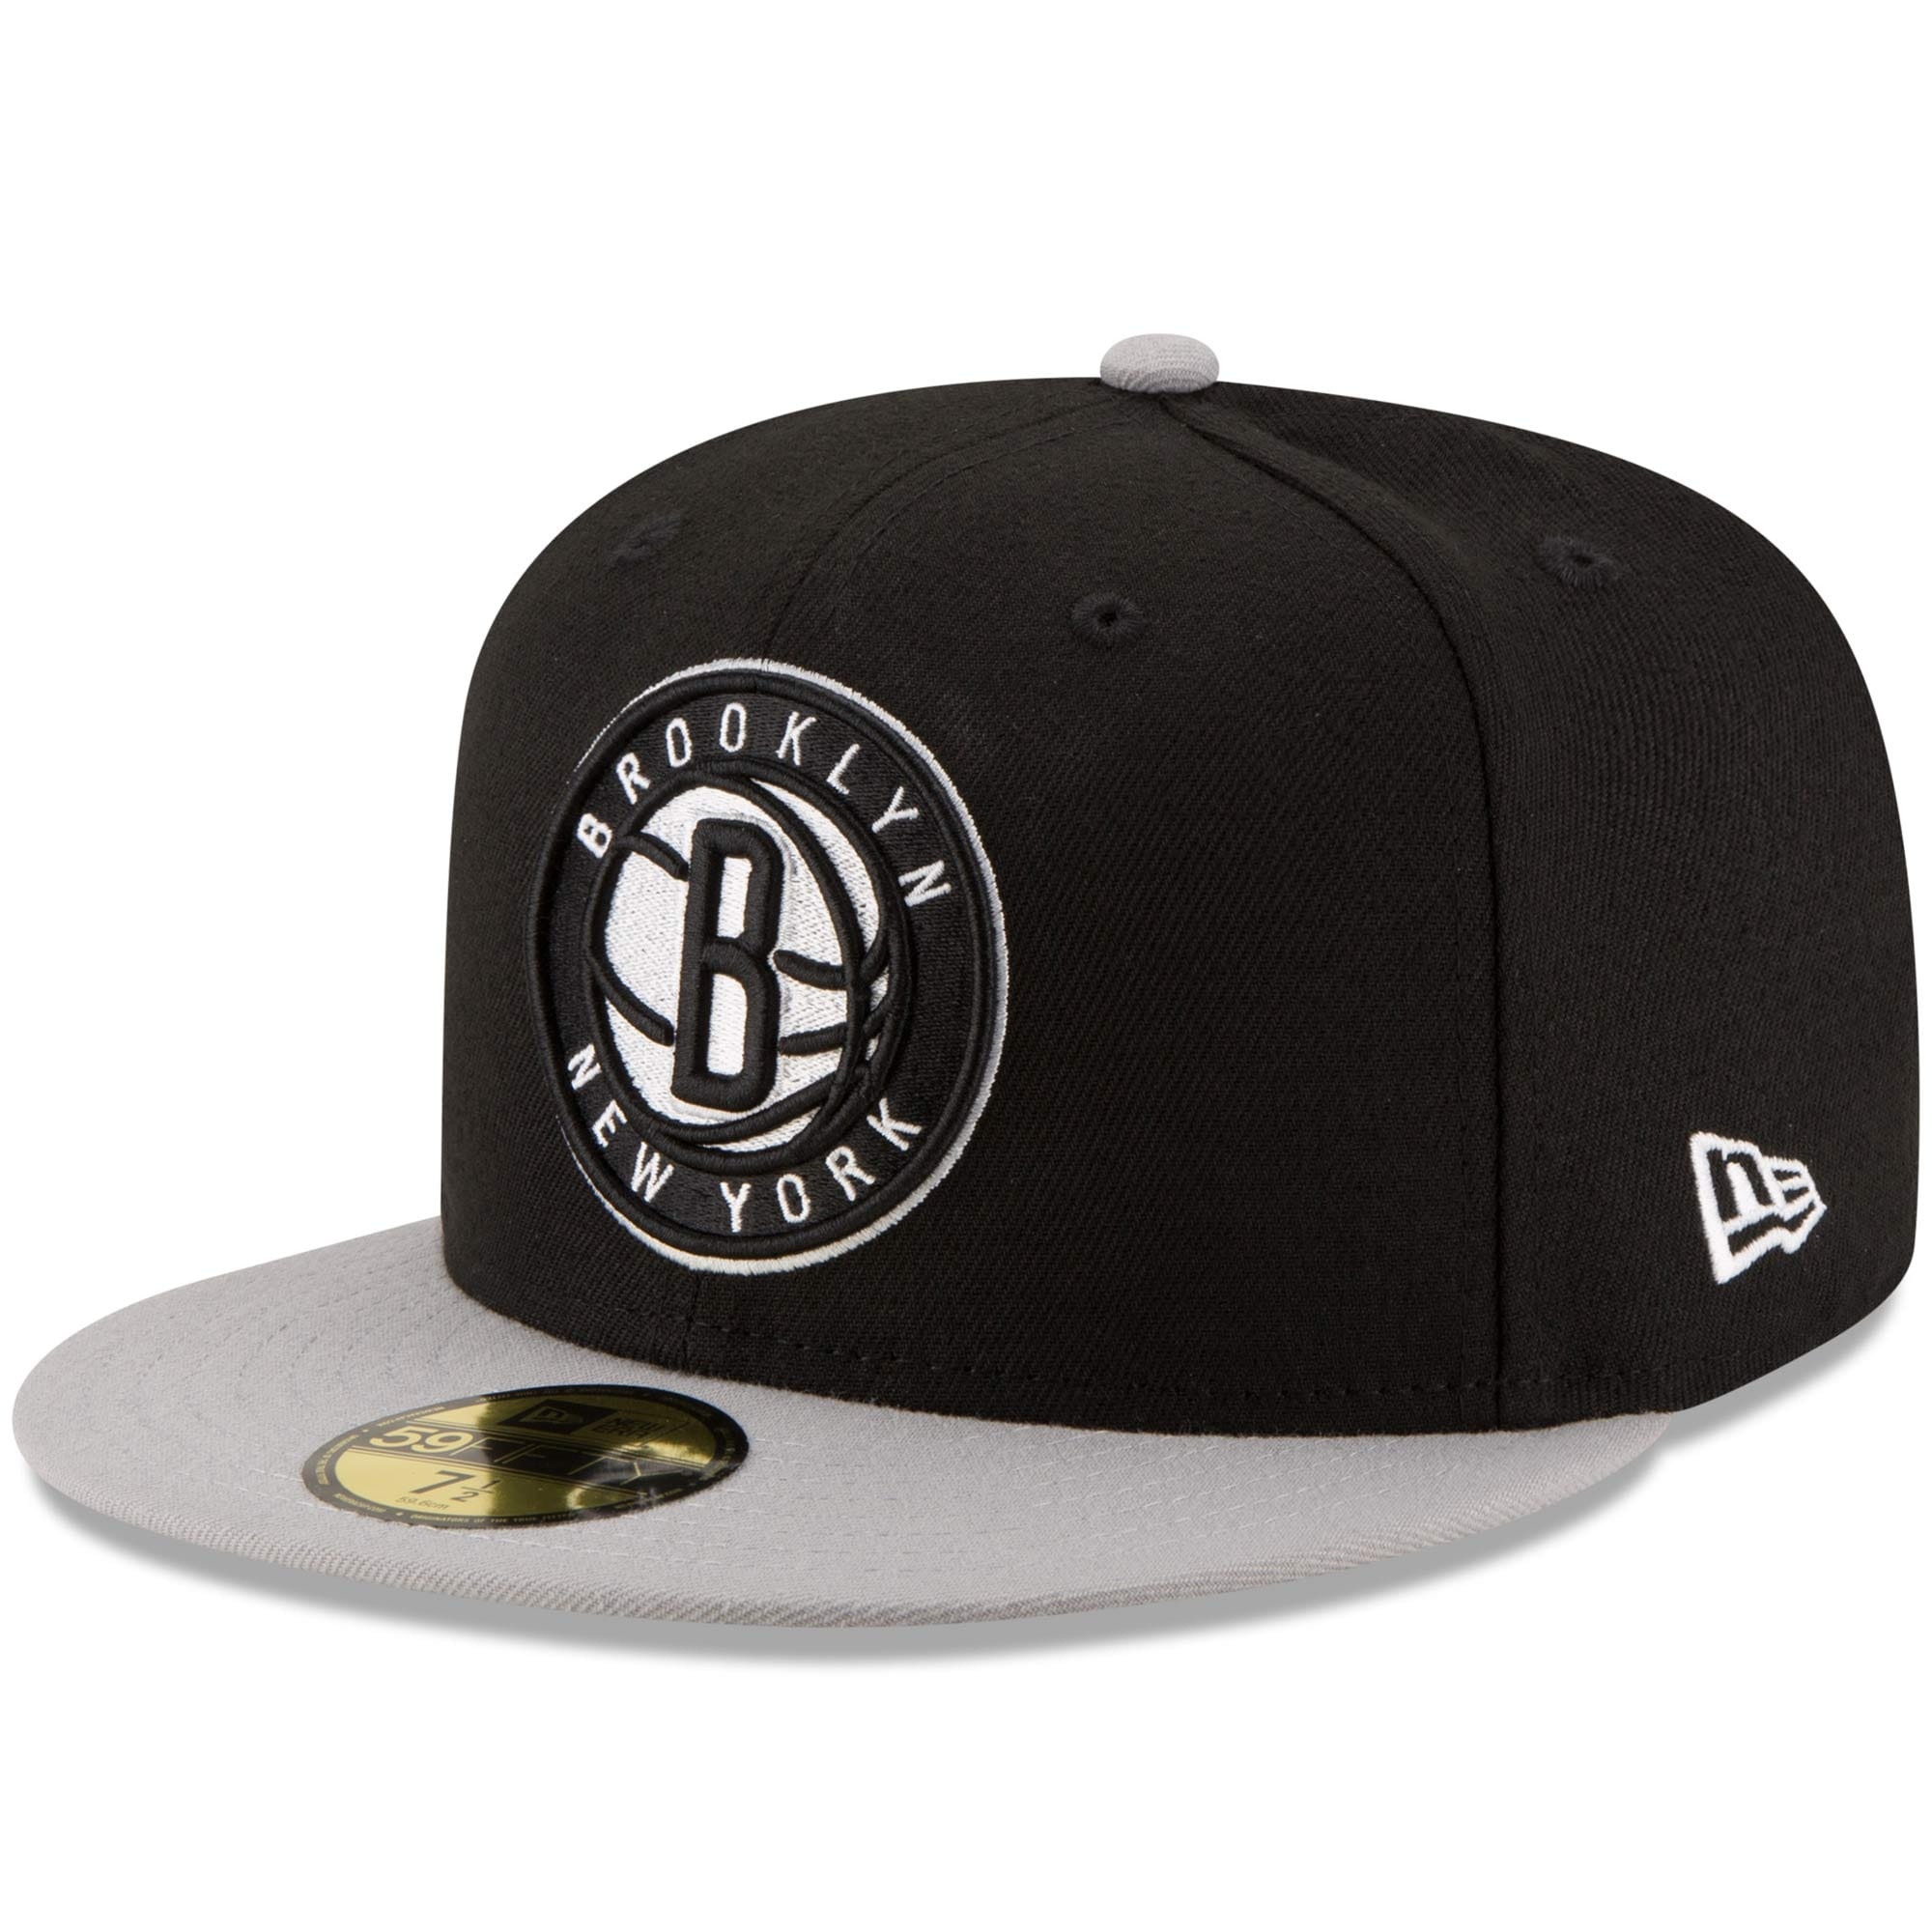 Brooklyn Nets New Era Official Team Color 2Tone 59FIFTY Fitted Hat - Black/Gray